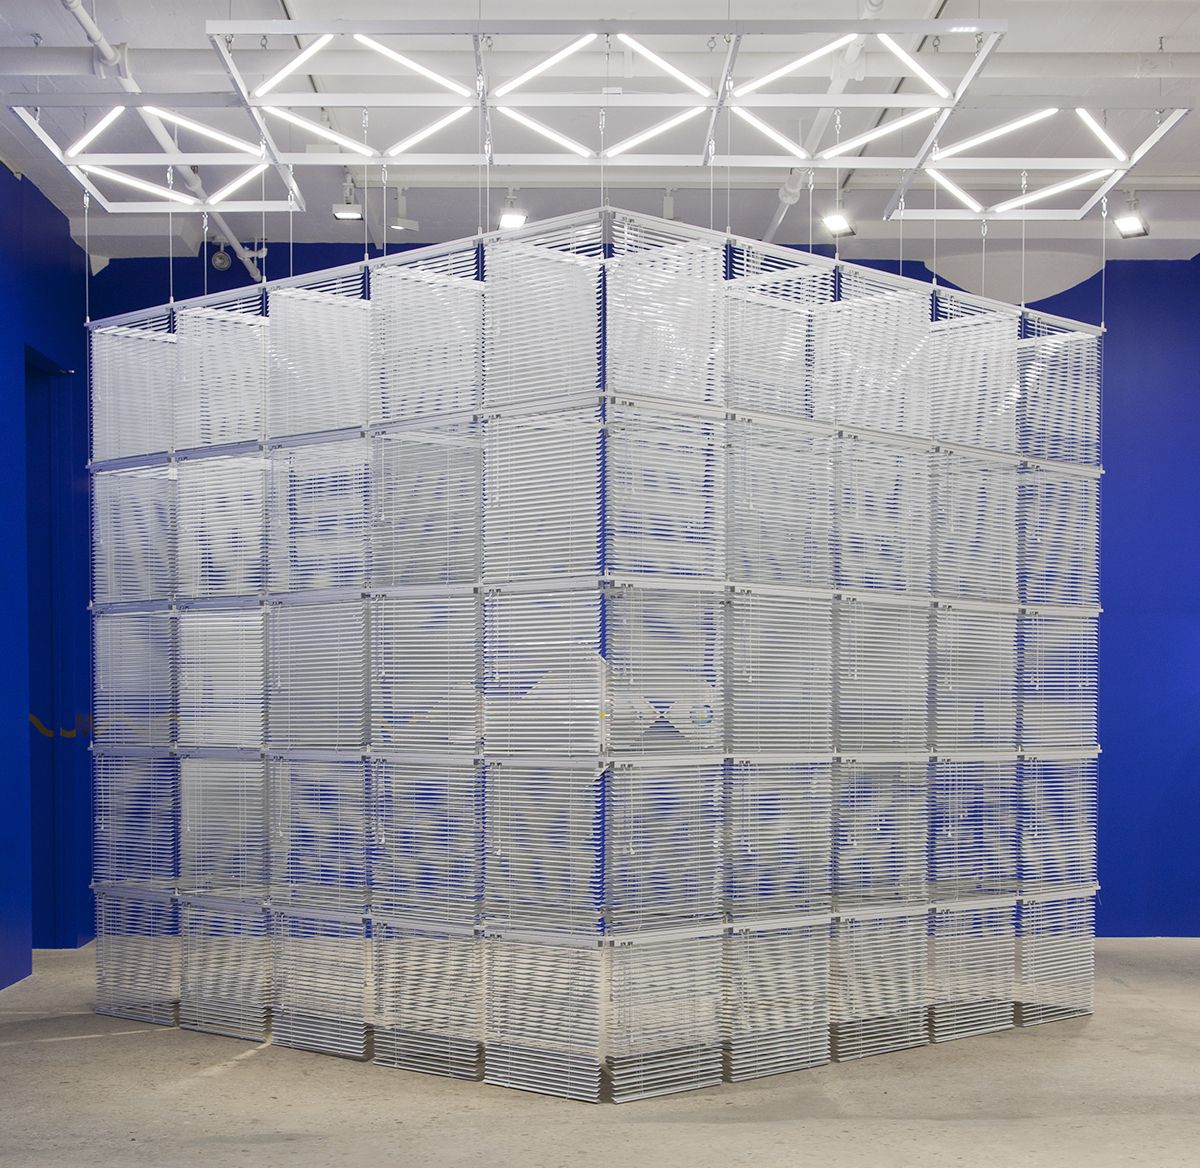 Haegue Yang, Sol LeWitt Upside Down –Cube Structure Based on Five Modules, Expanded 184 Times#74-B, 2016